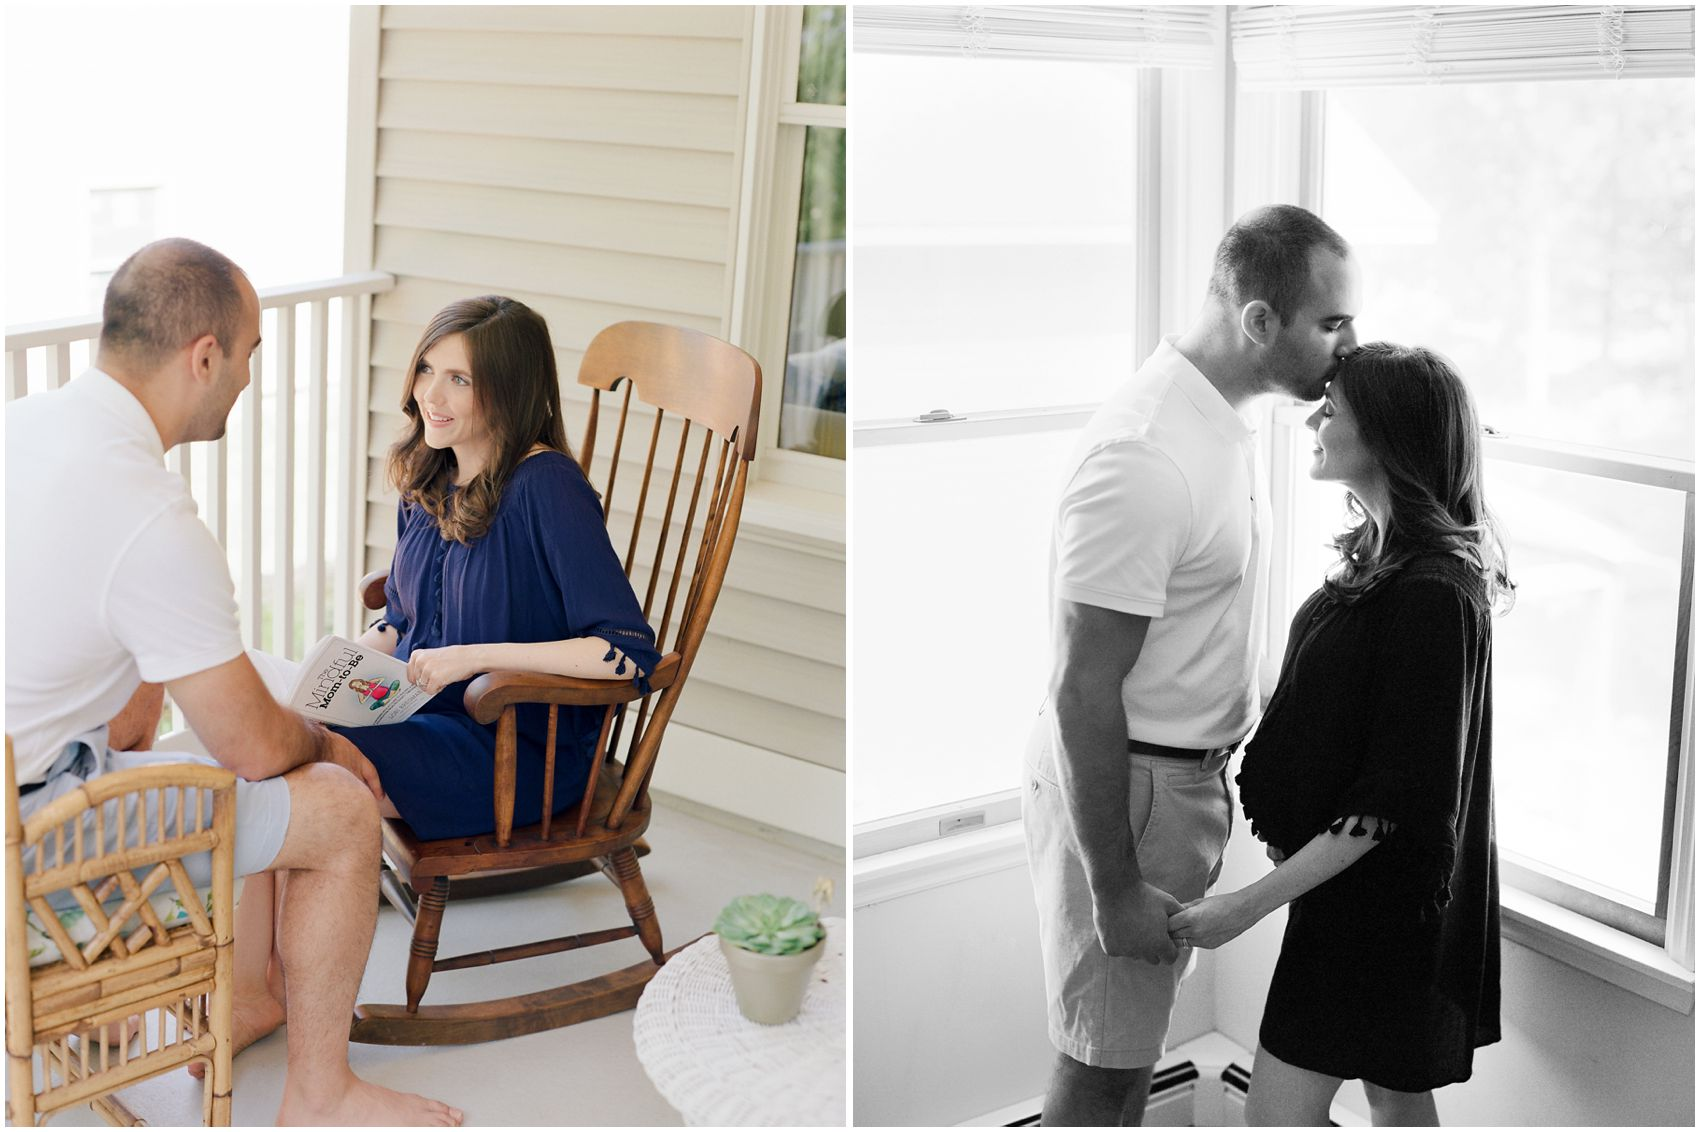 elegant maternity photos with intimate portrait of a pregnant couple sharing a moment